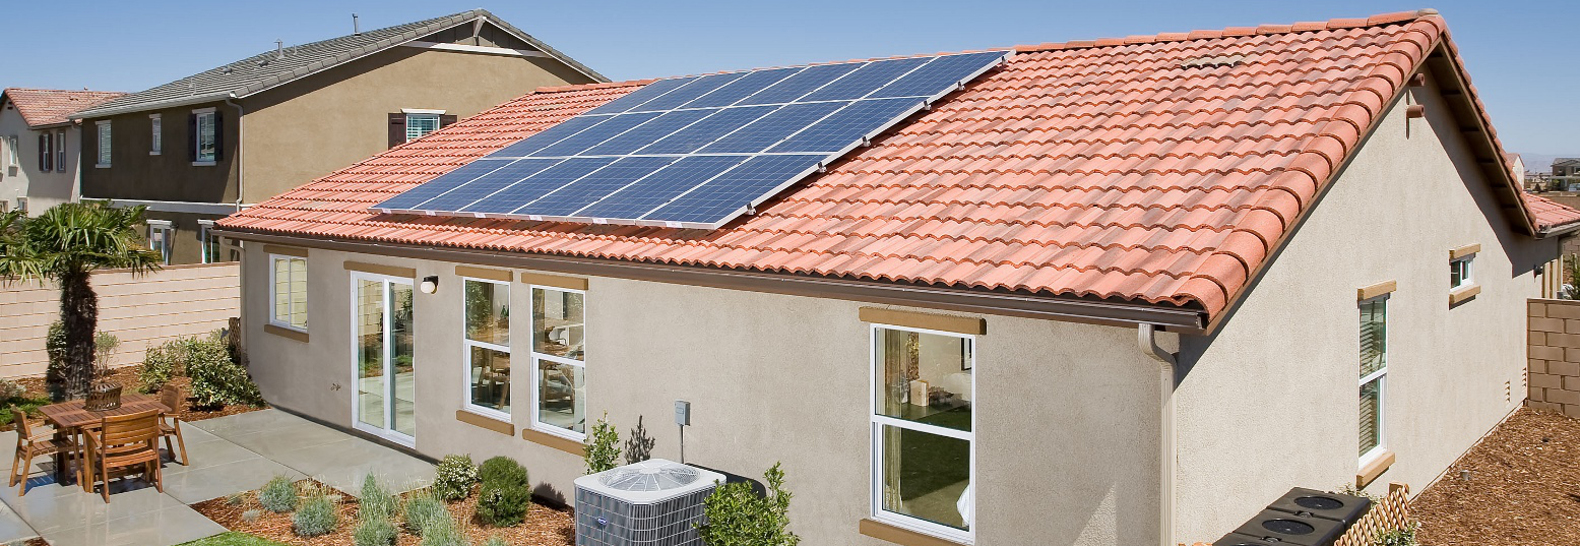 California city could become the first Zero Net Energy city in the U.S.